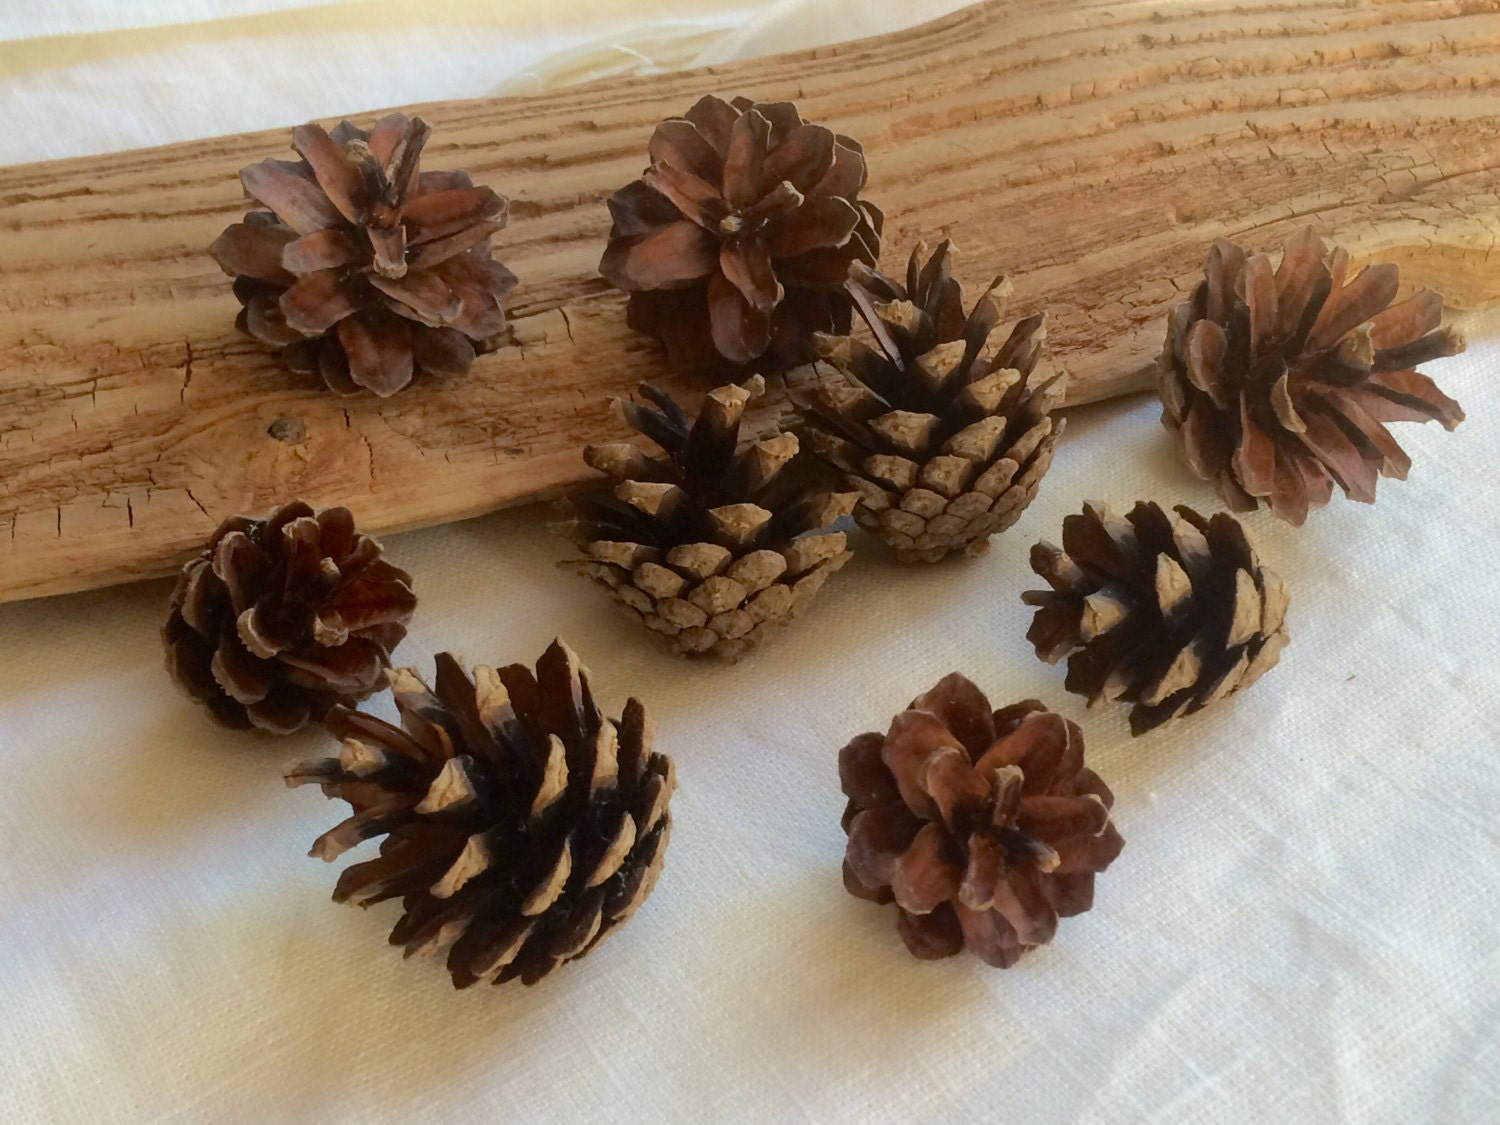 Scotch pine cones lot of 45 small 1 5 inch dry natural for Small pine cone crafts